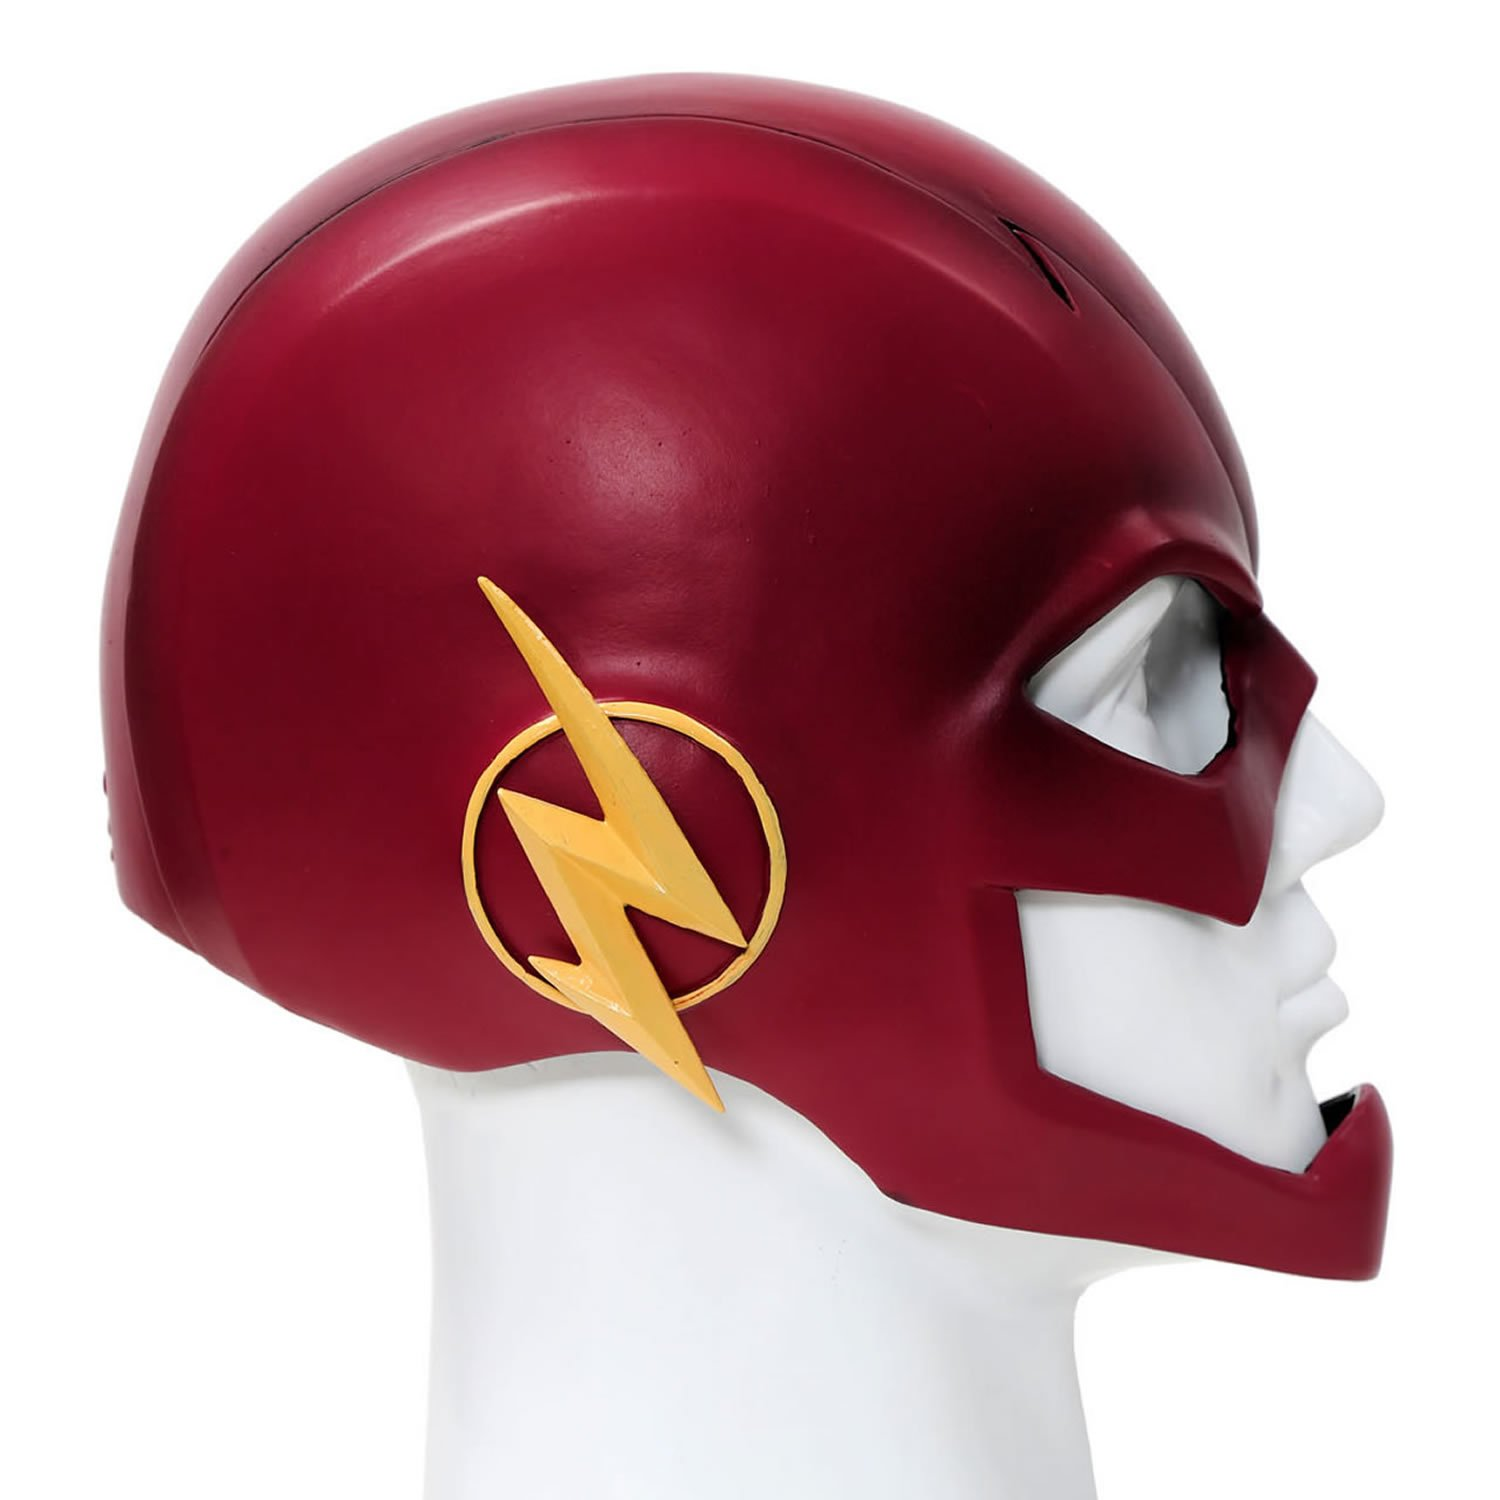 Flash Mask Cosplay Helmet PVC Red Mask For Adult Halloween Accessory